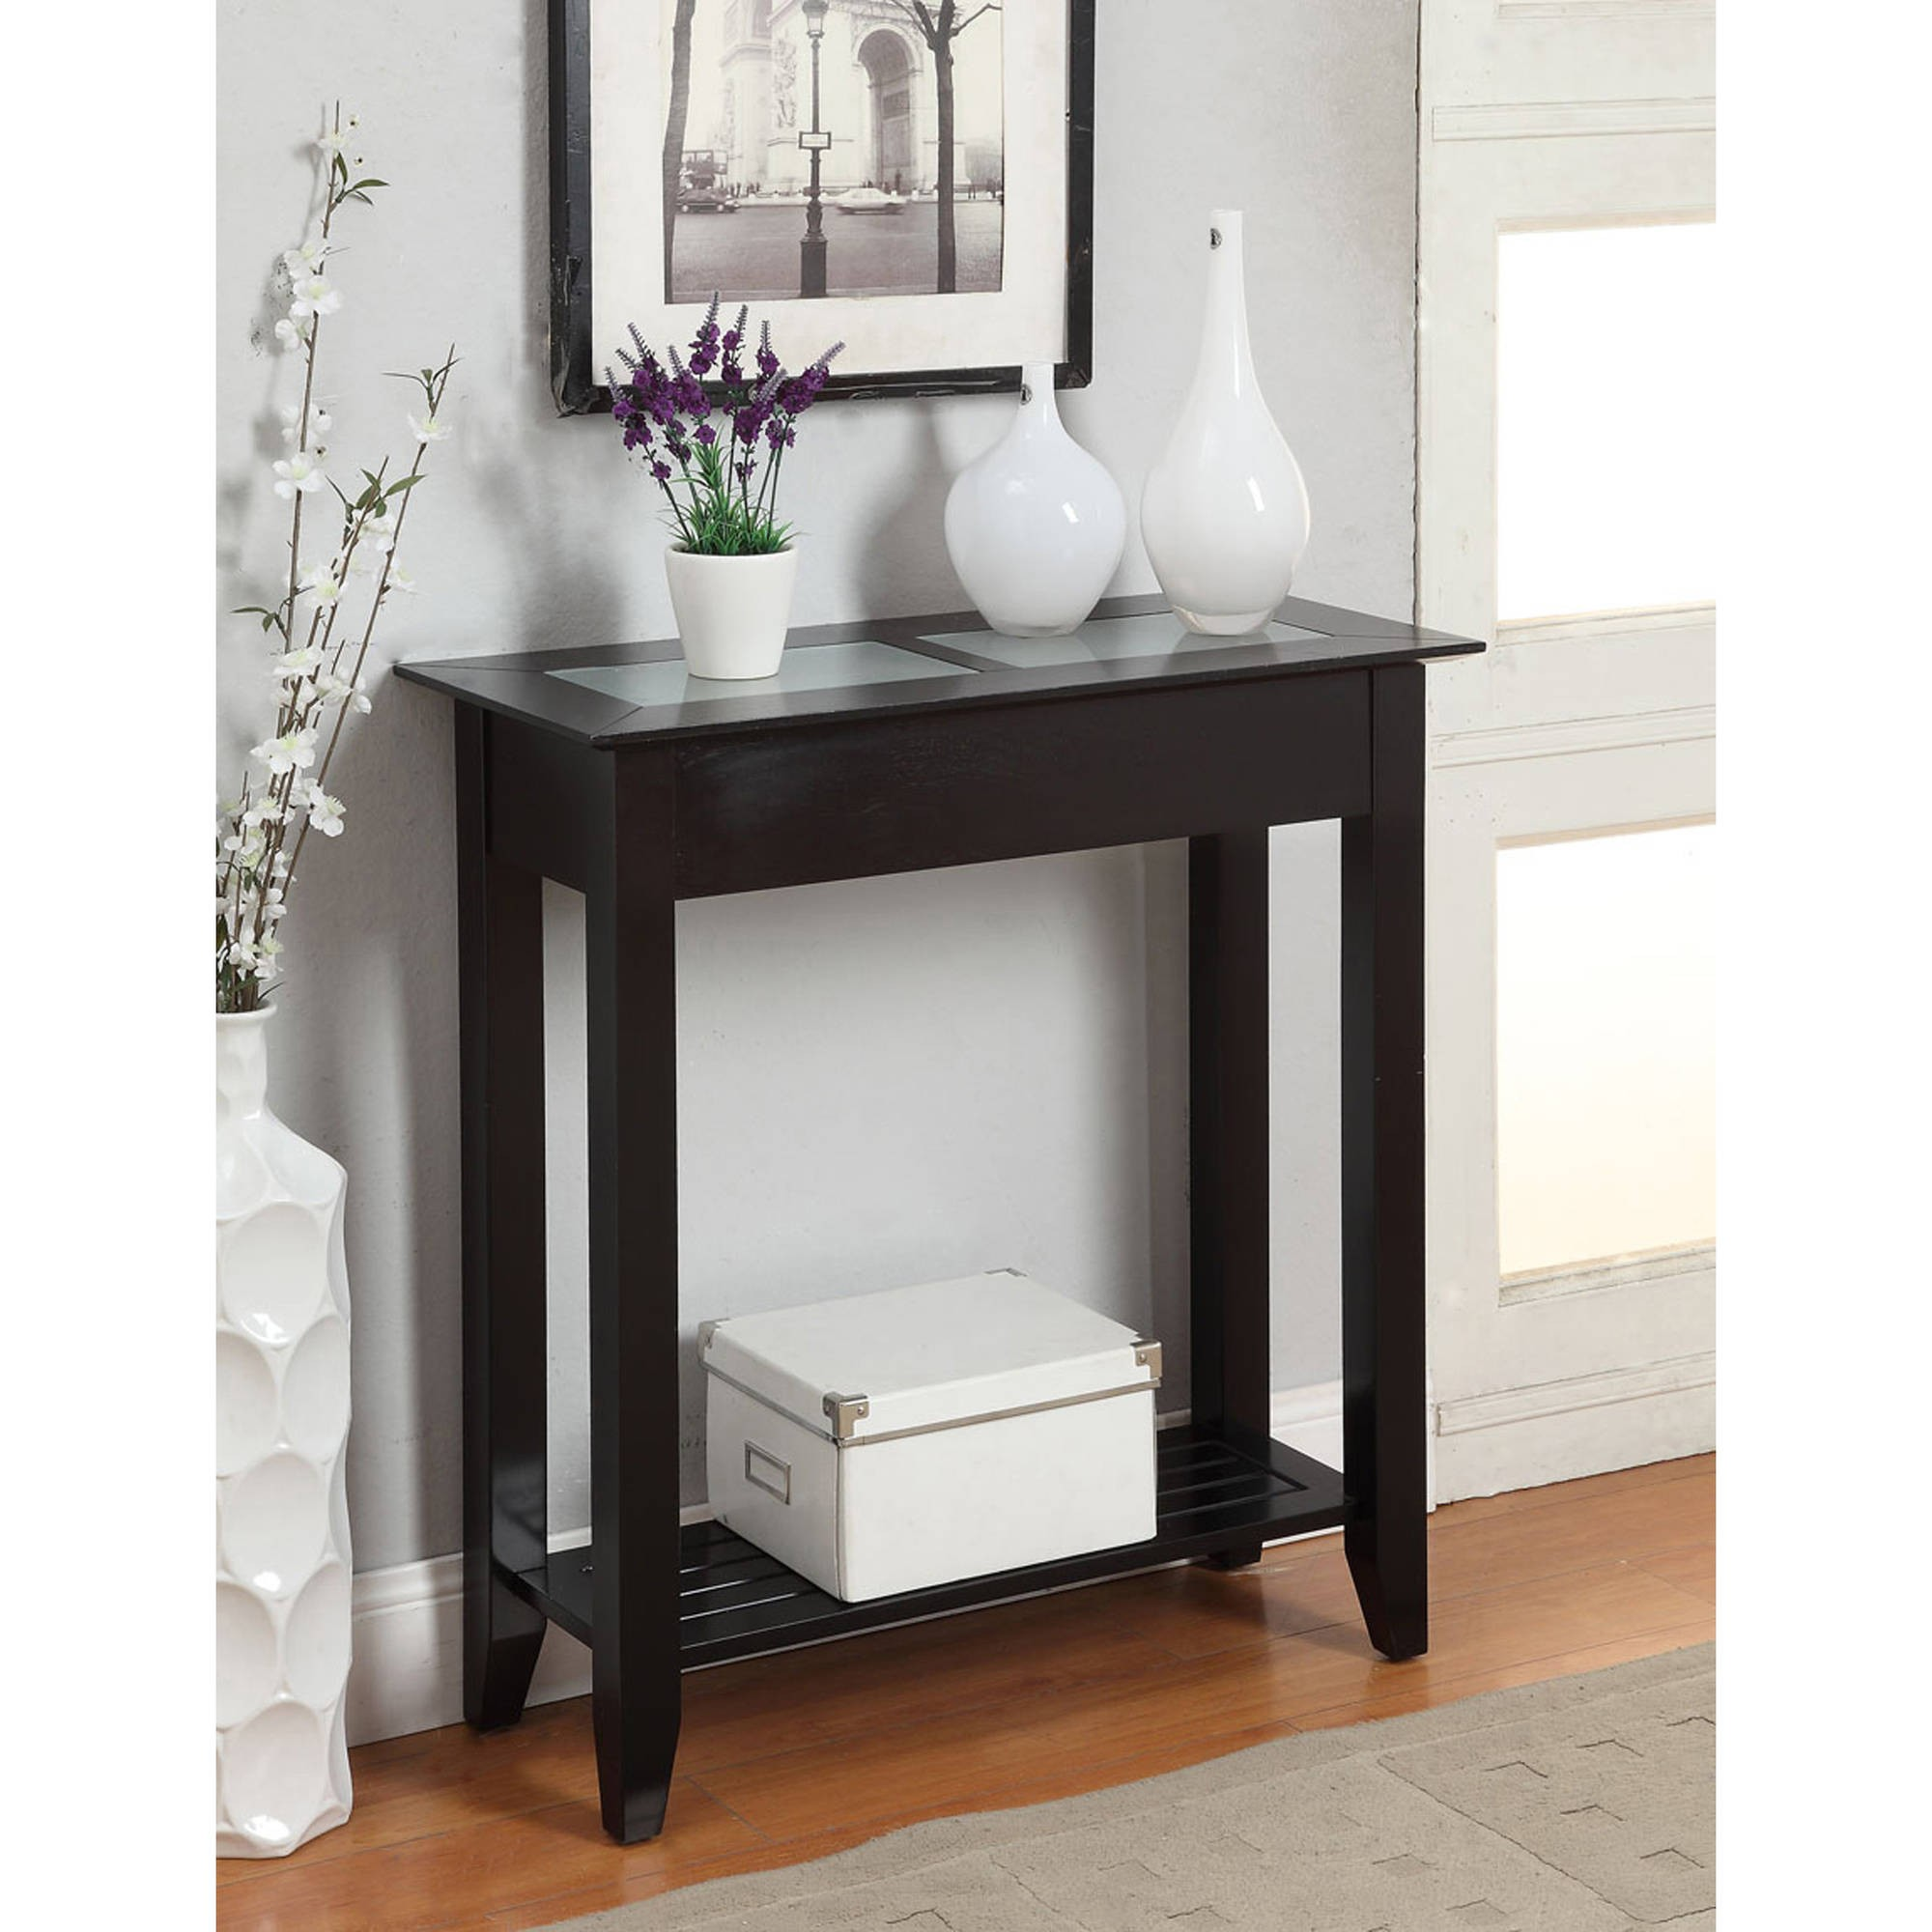 foyer accent tables webs dir info inspiring black carmel hallway table decorative raised panel bottom shelf frosted tempered glass inlay top attractive painted wood contemporary